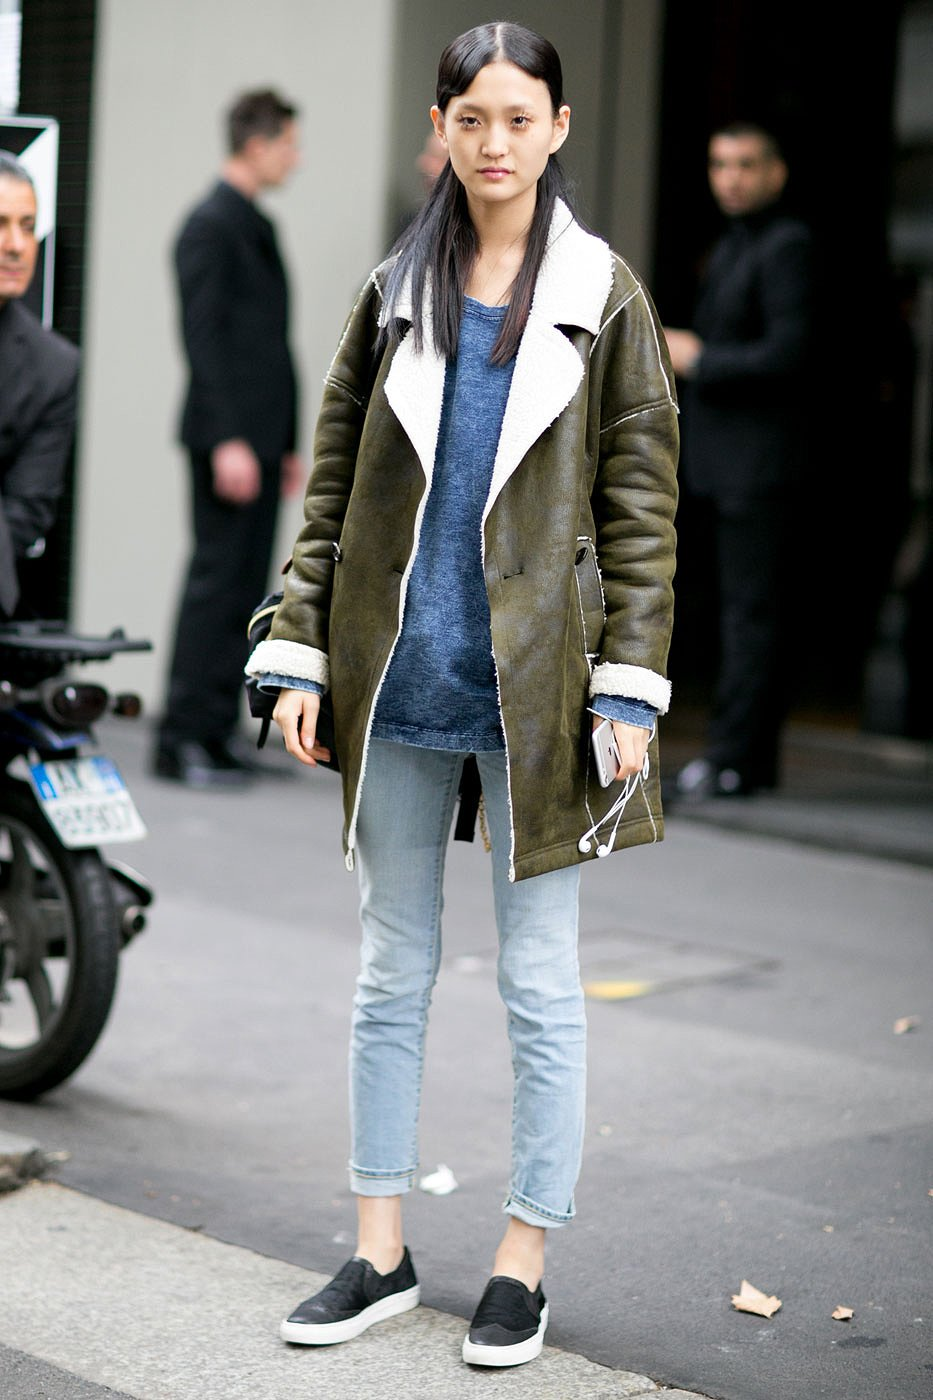 How to wear cropped jeans NYFW Fall/Winter 2016 pic 2